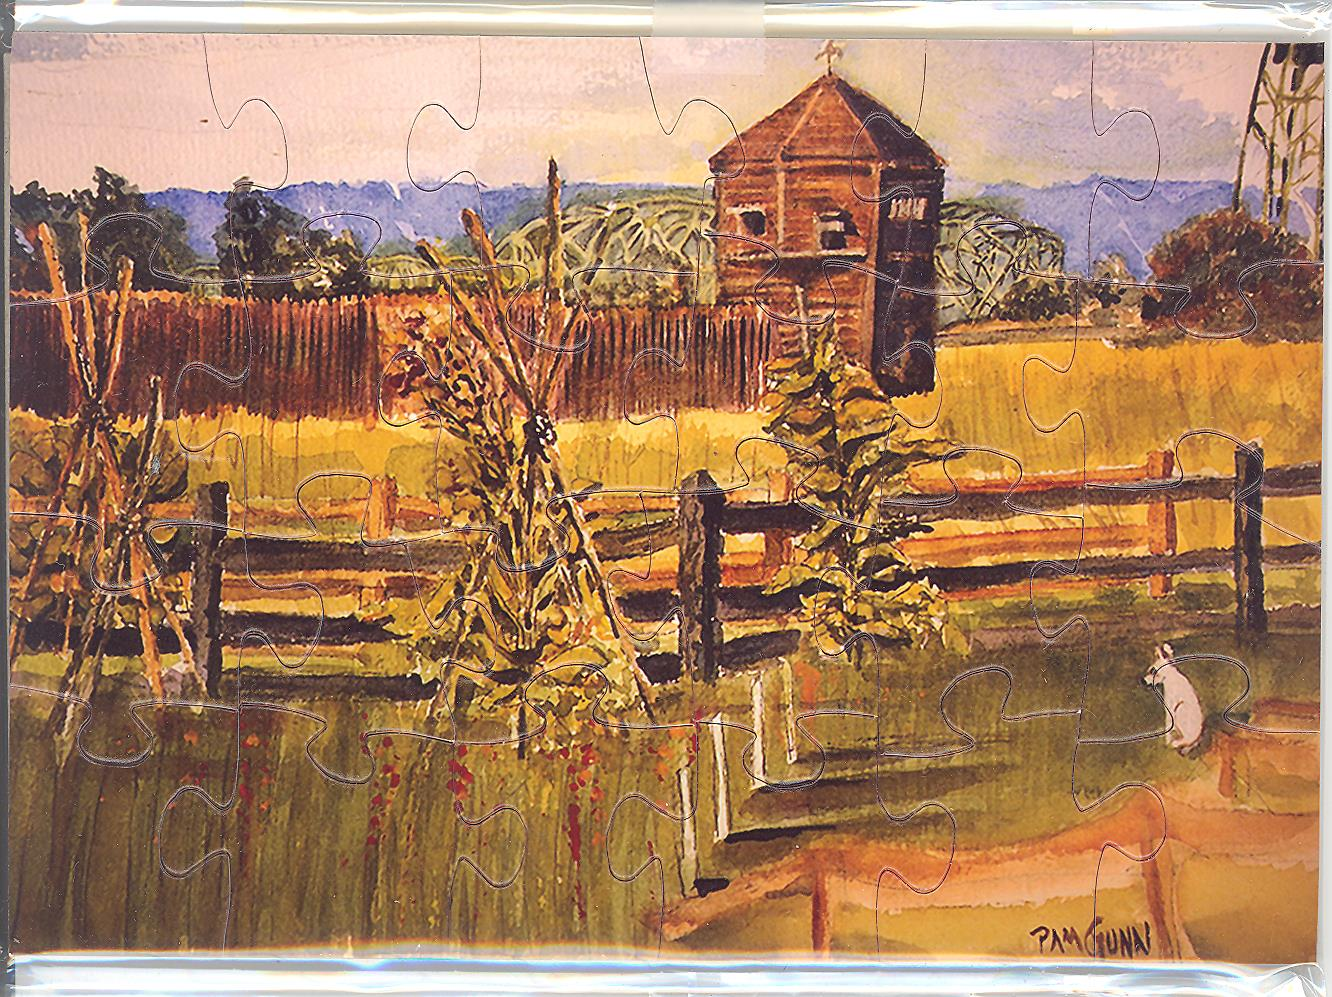 Puzzle Postcard Fort Vancouver Bastion by Pam Gunn